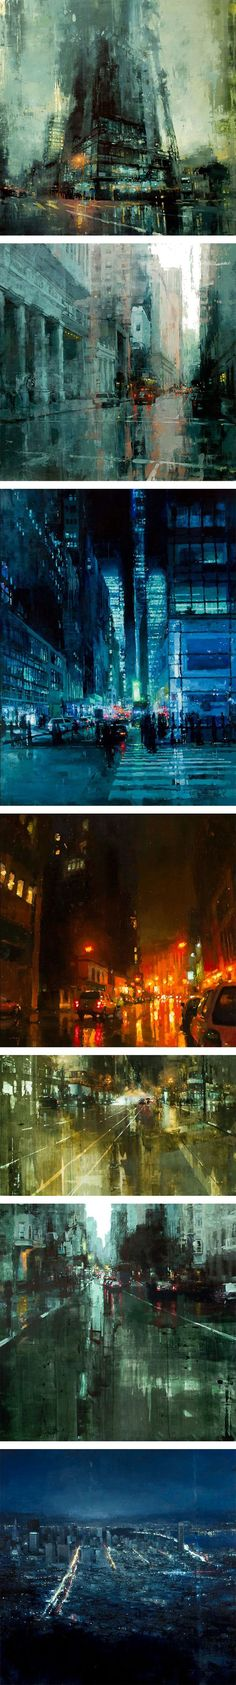 San Francisco-based artist Jeremy Mann lives and works in San Francisco where he executes these sublime, moody cityscapes using oil paints.…